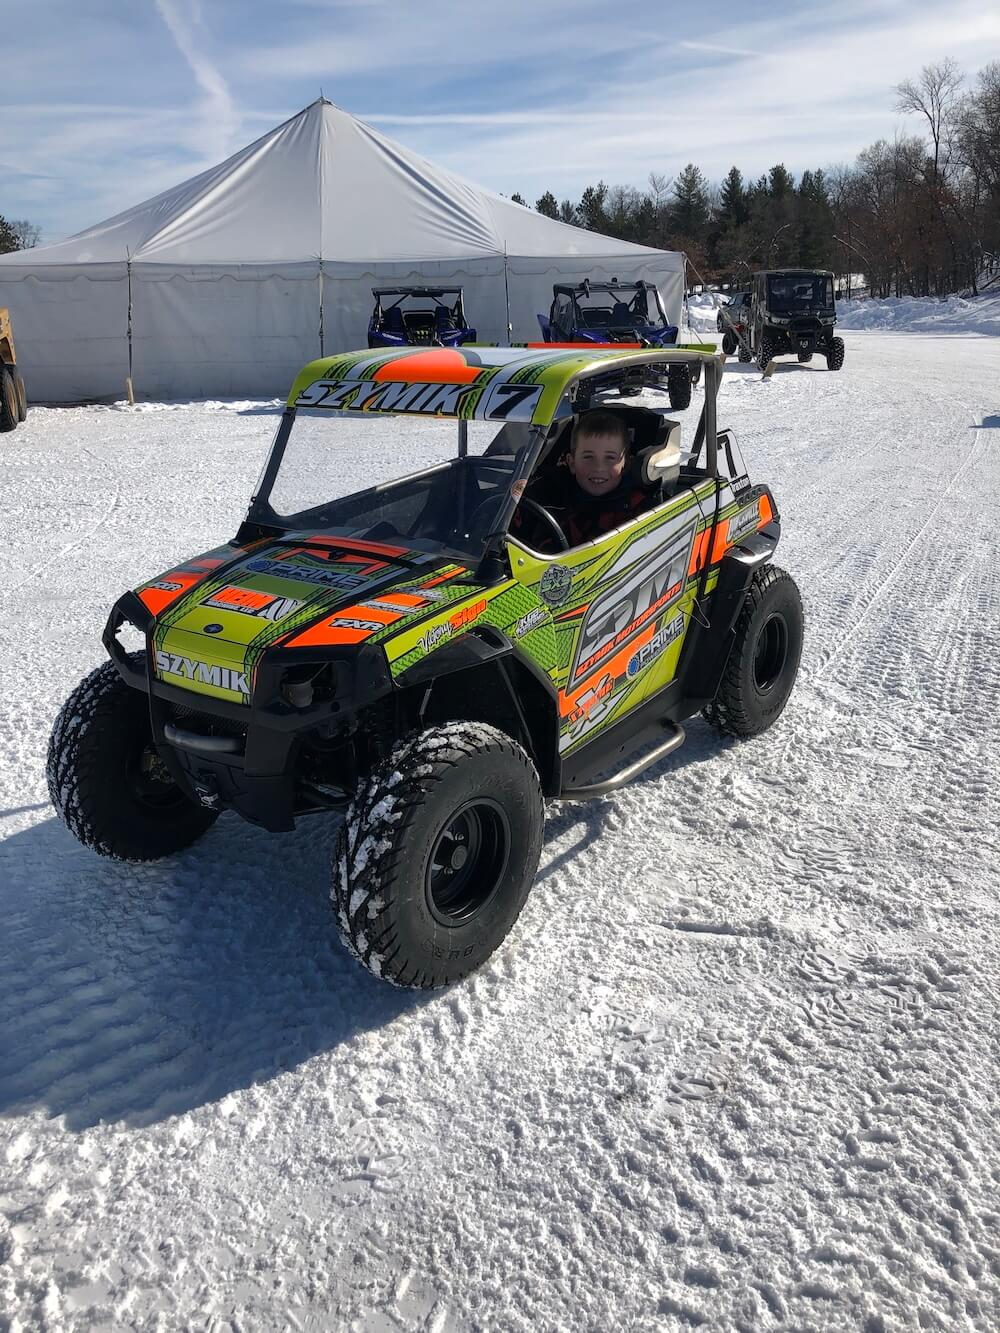 Neon yellow and orange mini Polaris getting ready for the Twin Bridge Takedown